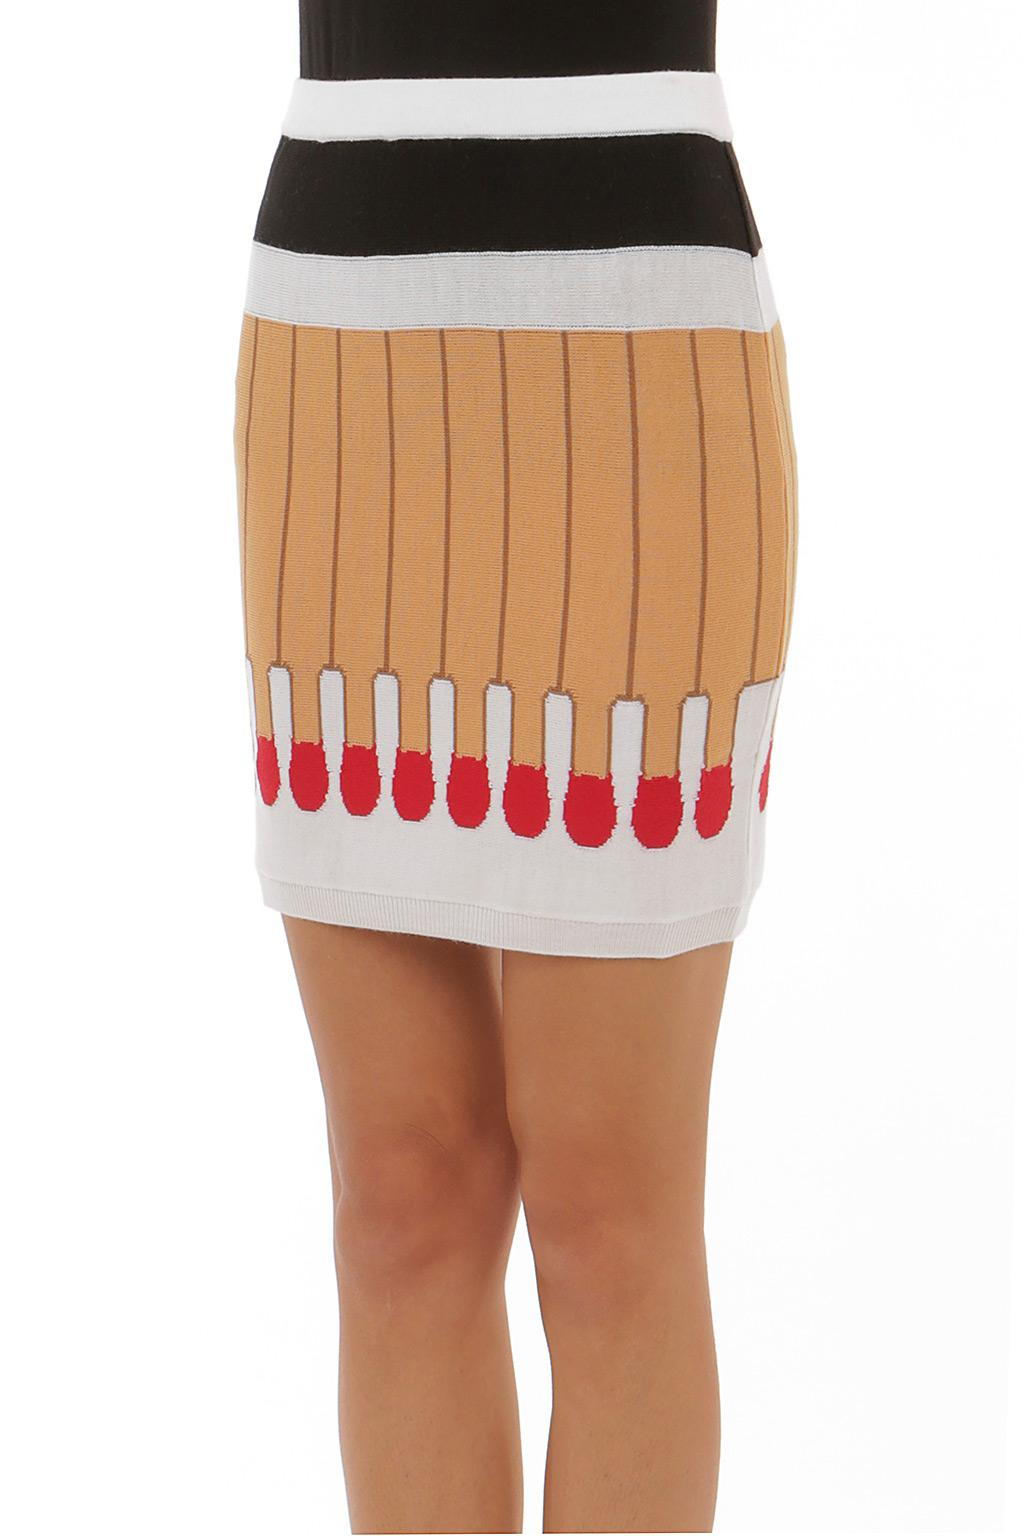 Moschino Match Embroidered Skirt in Brown